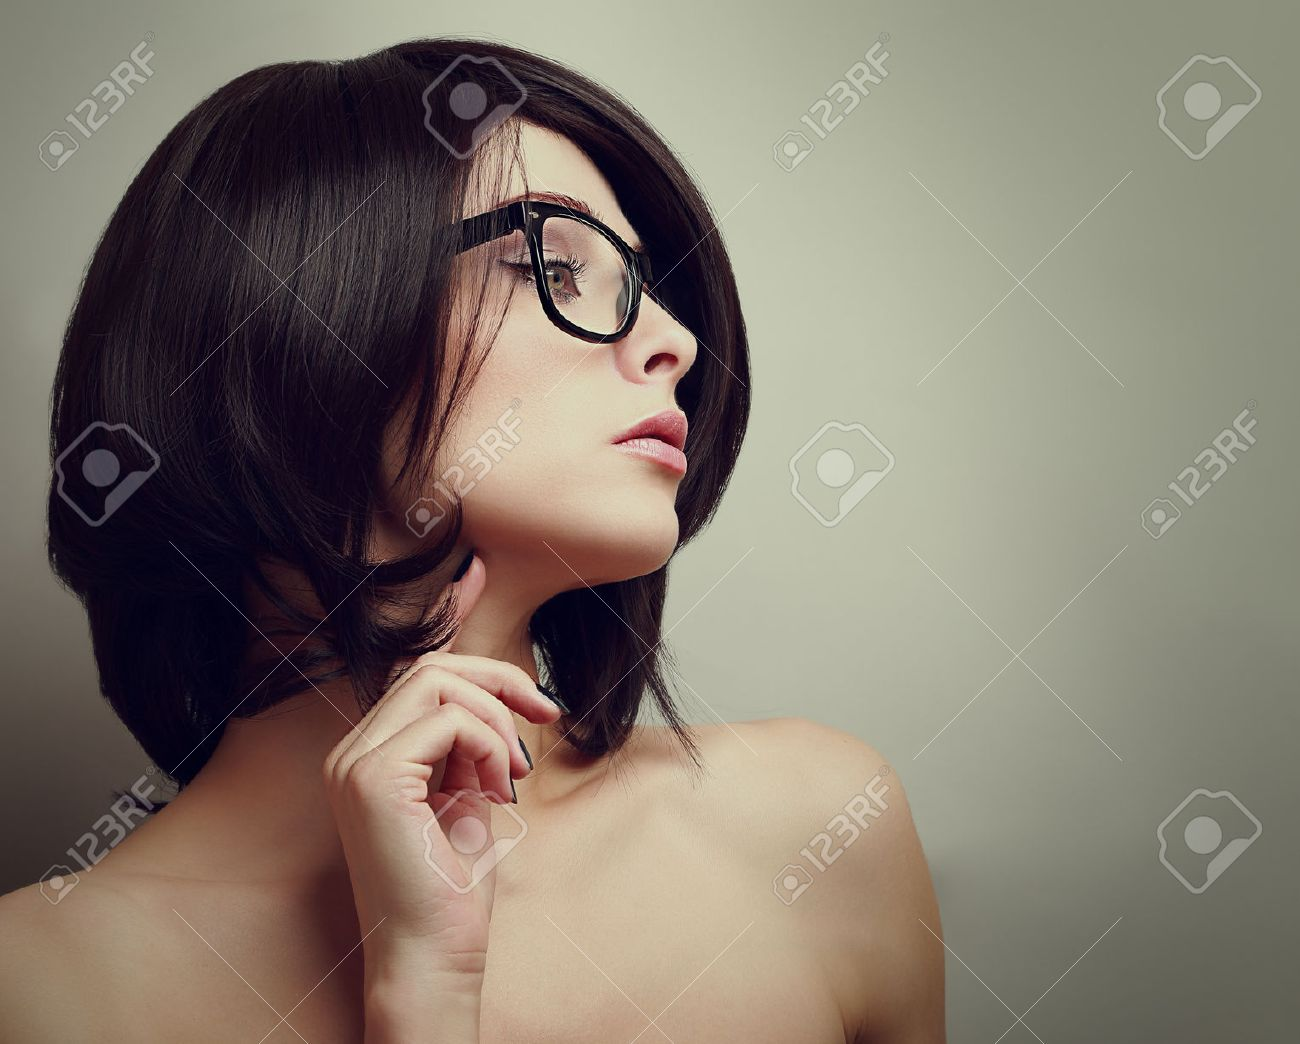 Profile pictures Sexy